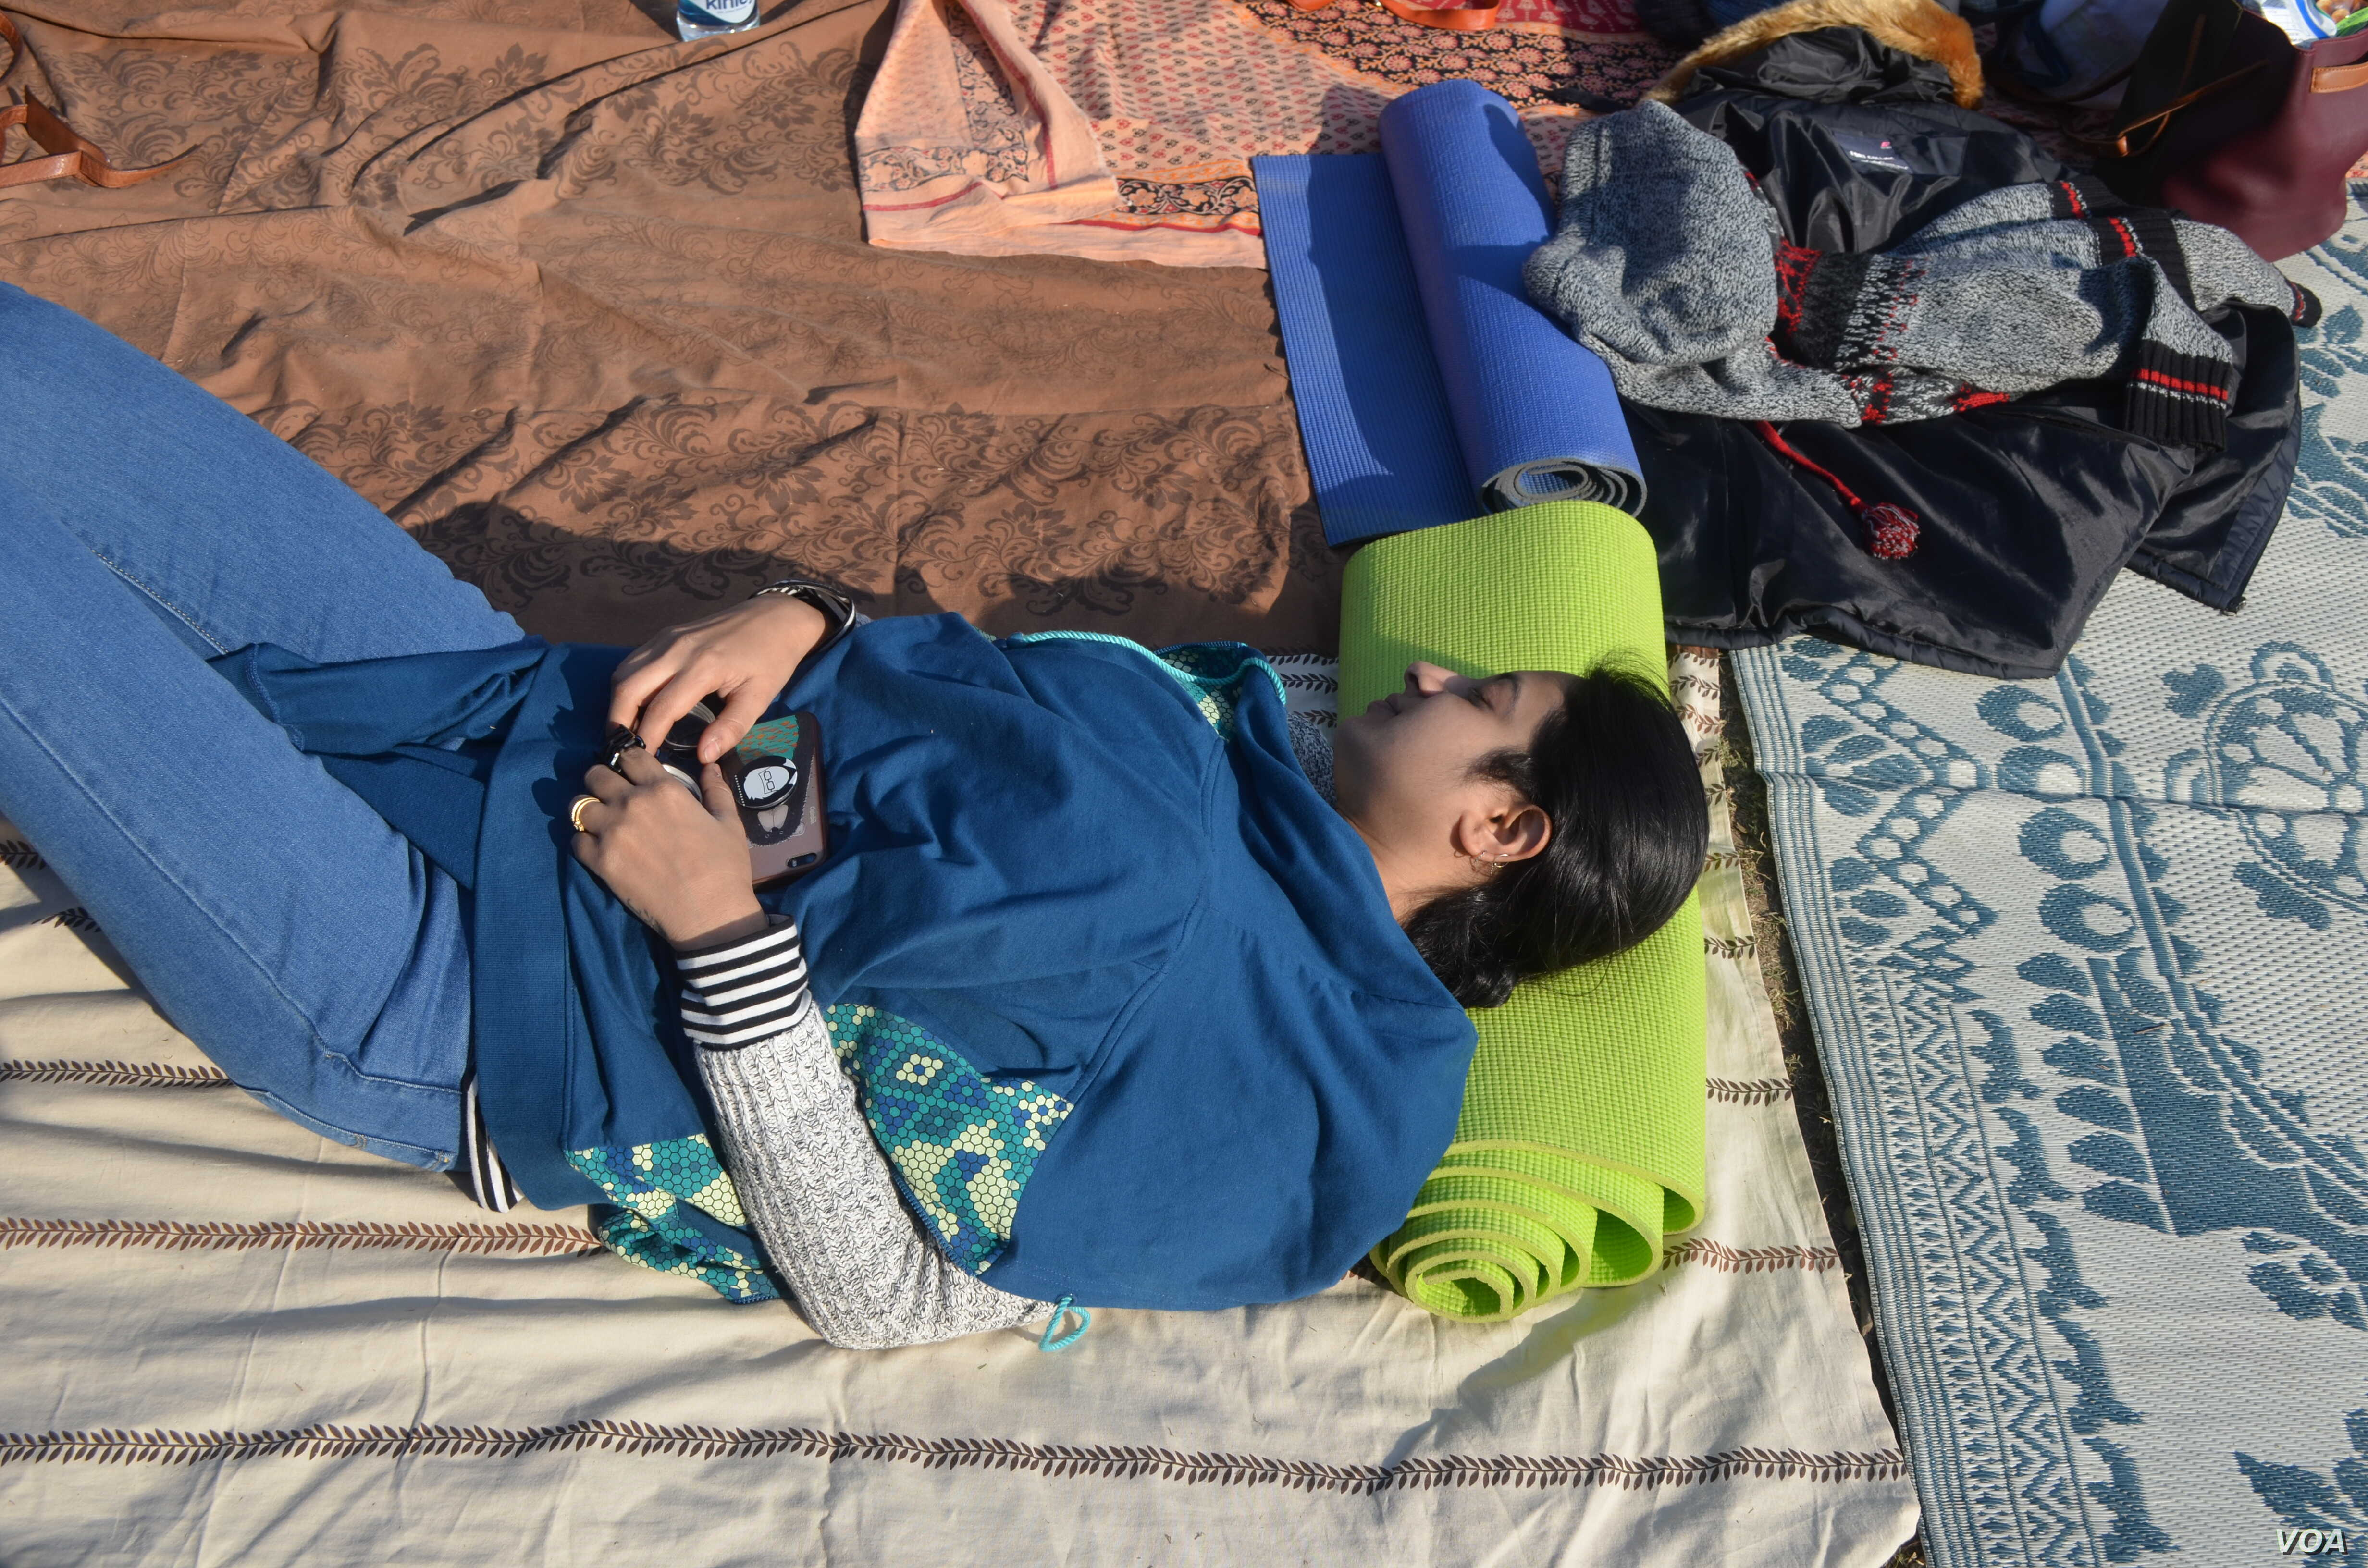 """A woman takes a symbolic nap at a park in New Delhi as part of a """"Meet to Sleep"""" campaign initiated to highlight the need for more safety for women. (A. Pasricha/VOA)"""